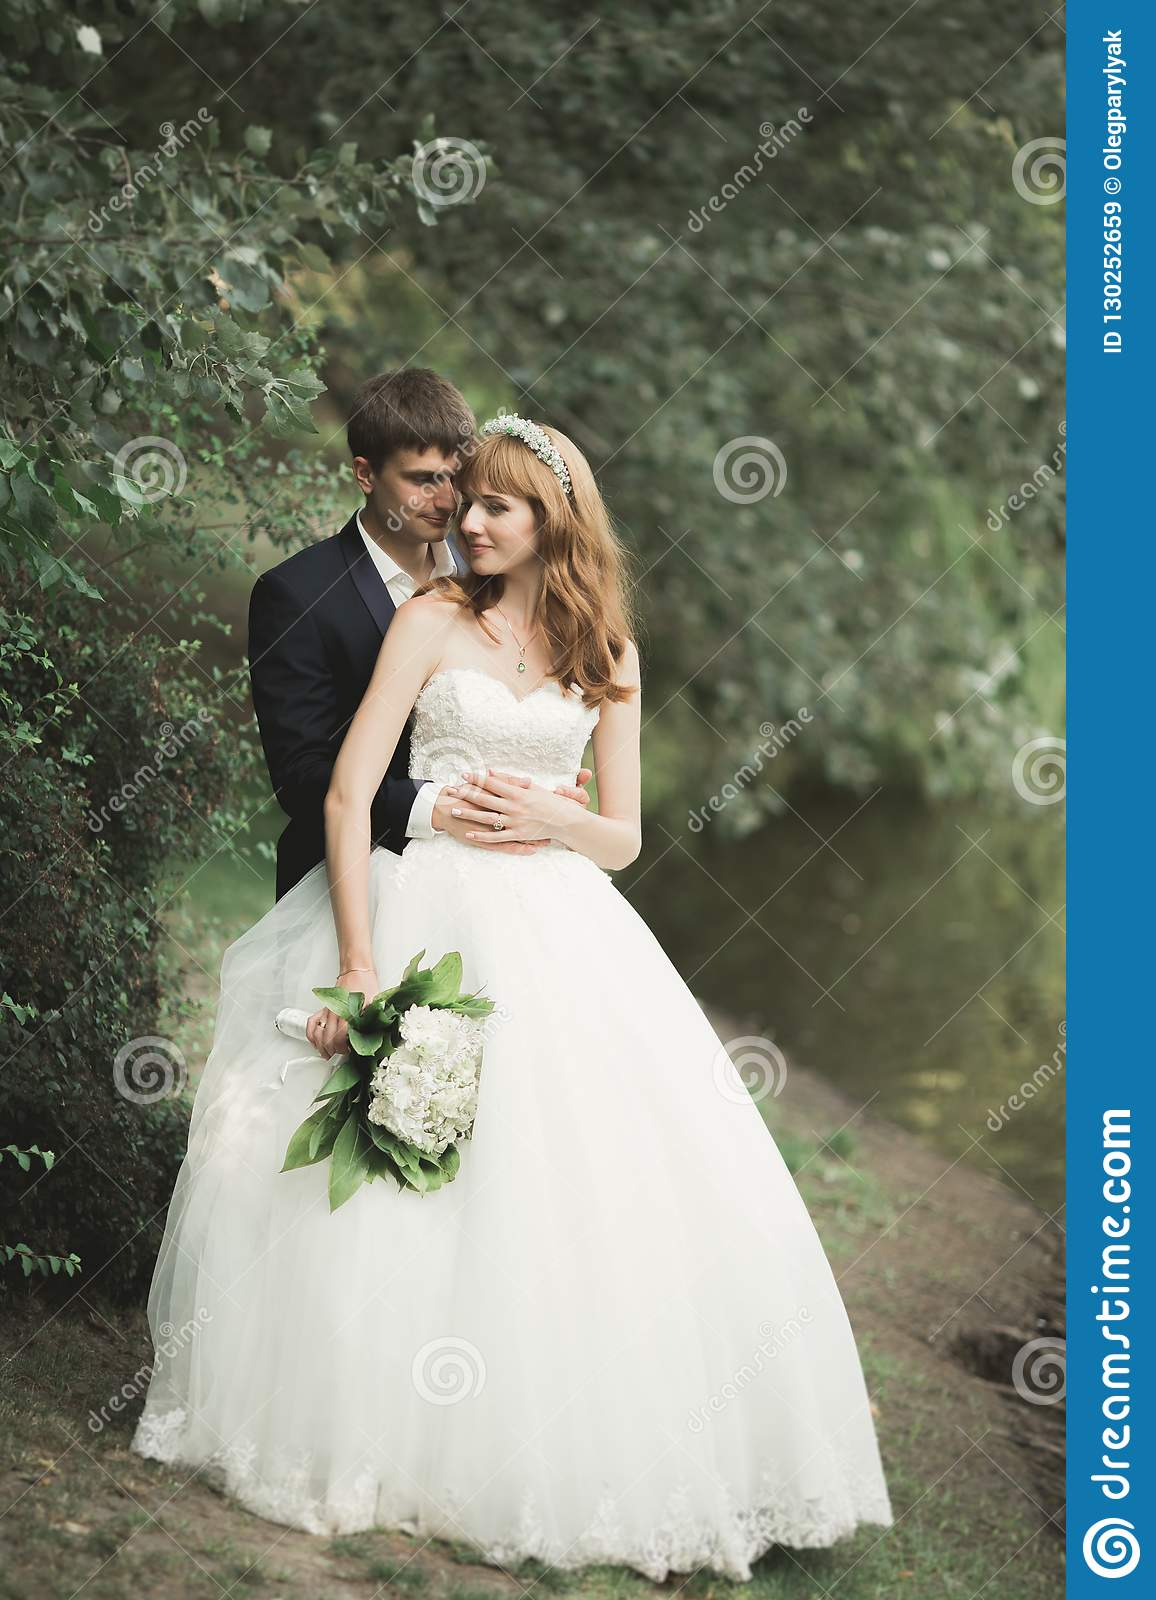 Beautiful Romantic Wedding Couple Of Newlyweds Hugging In Park On Sunset Stock Image Image Of Marriage Couple 130252659